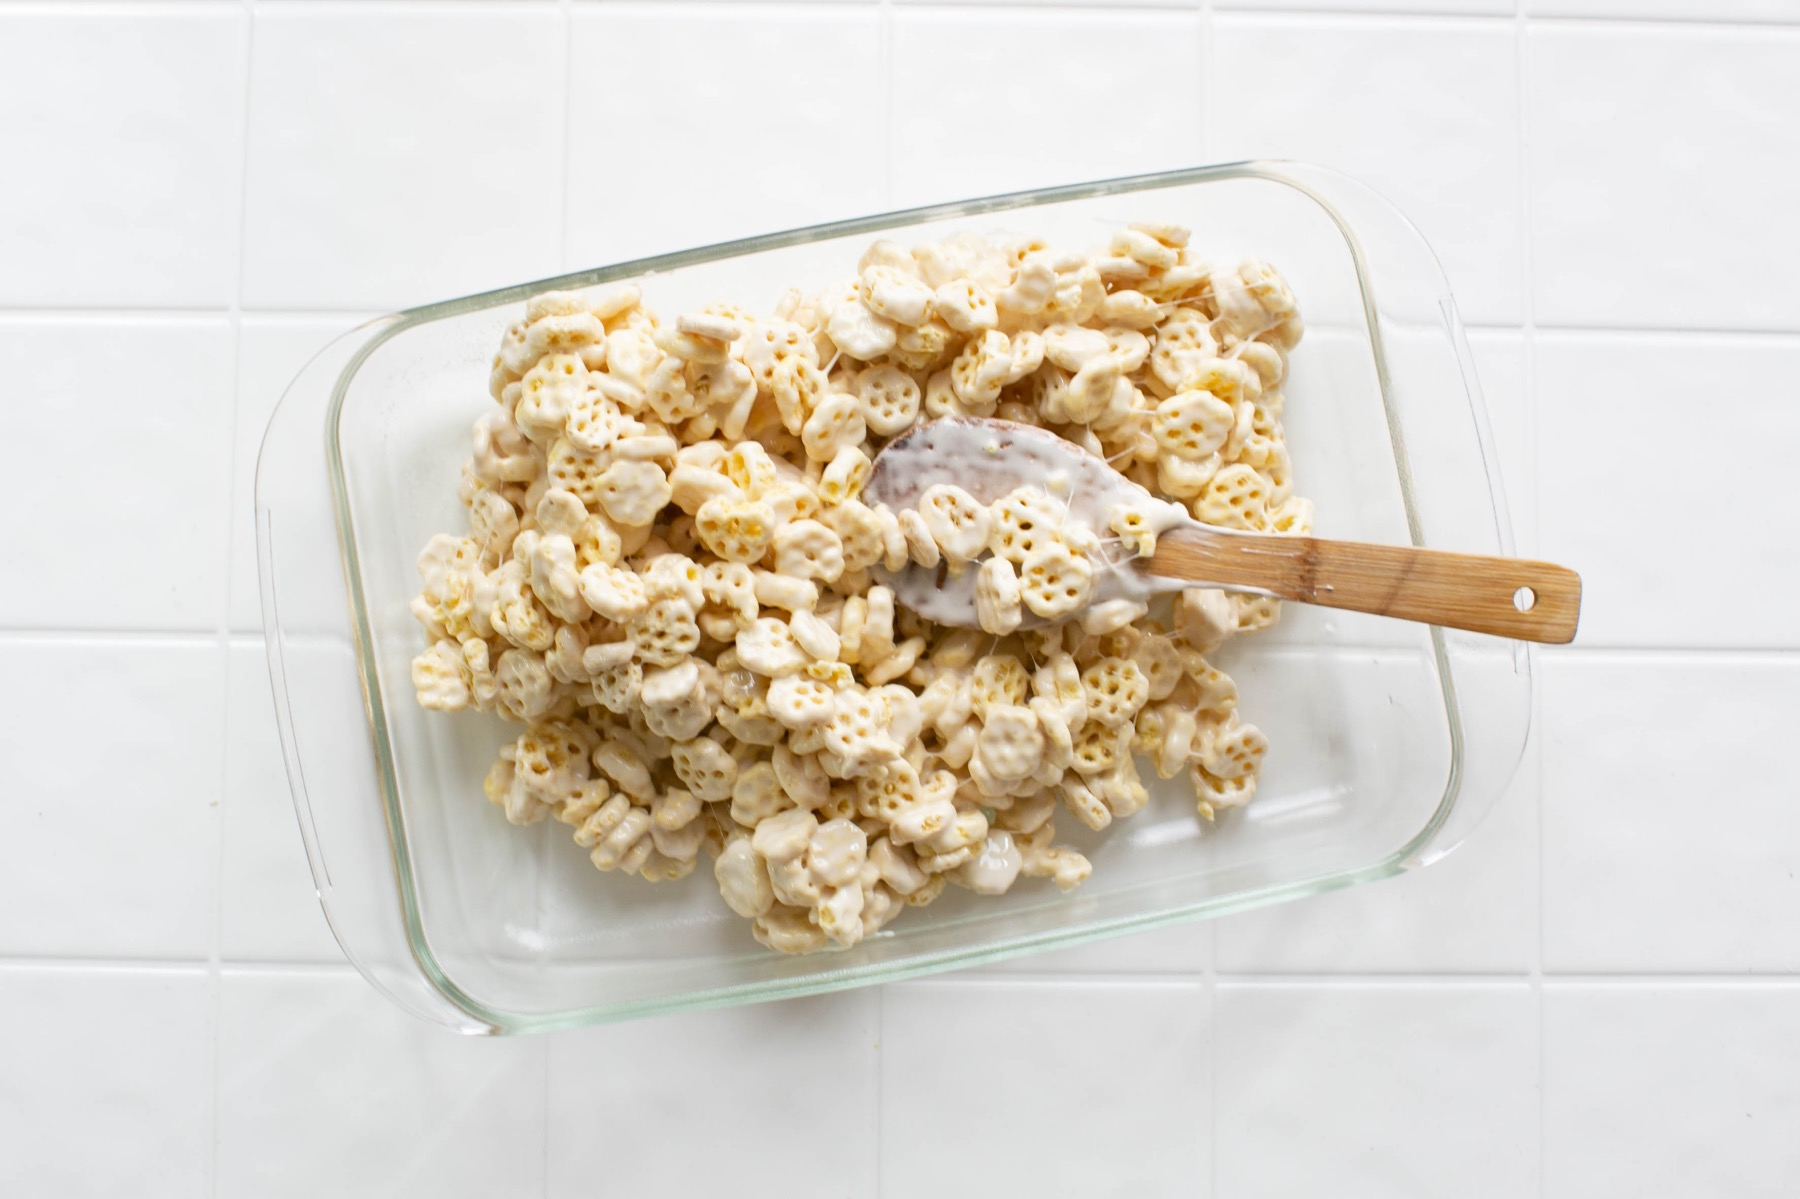 spread your cereal into a greased 13x9 pan